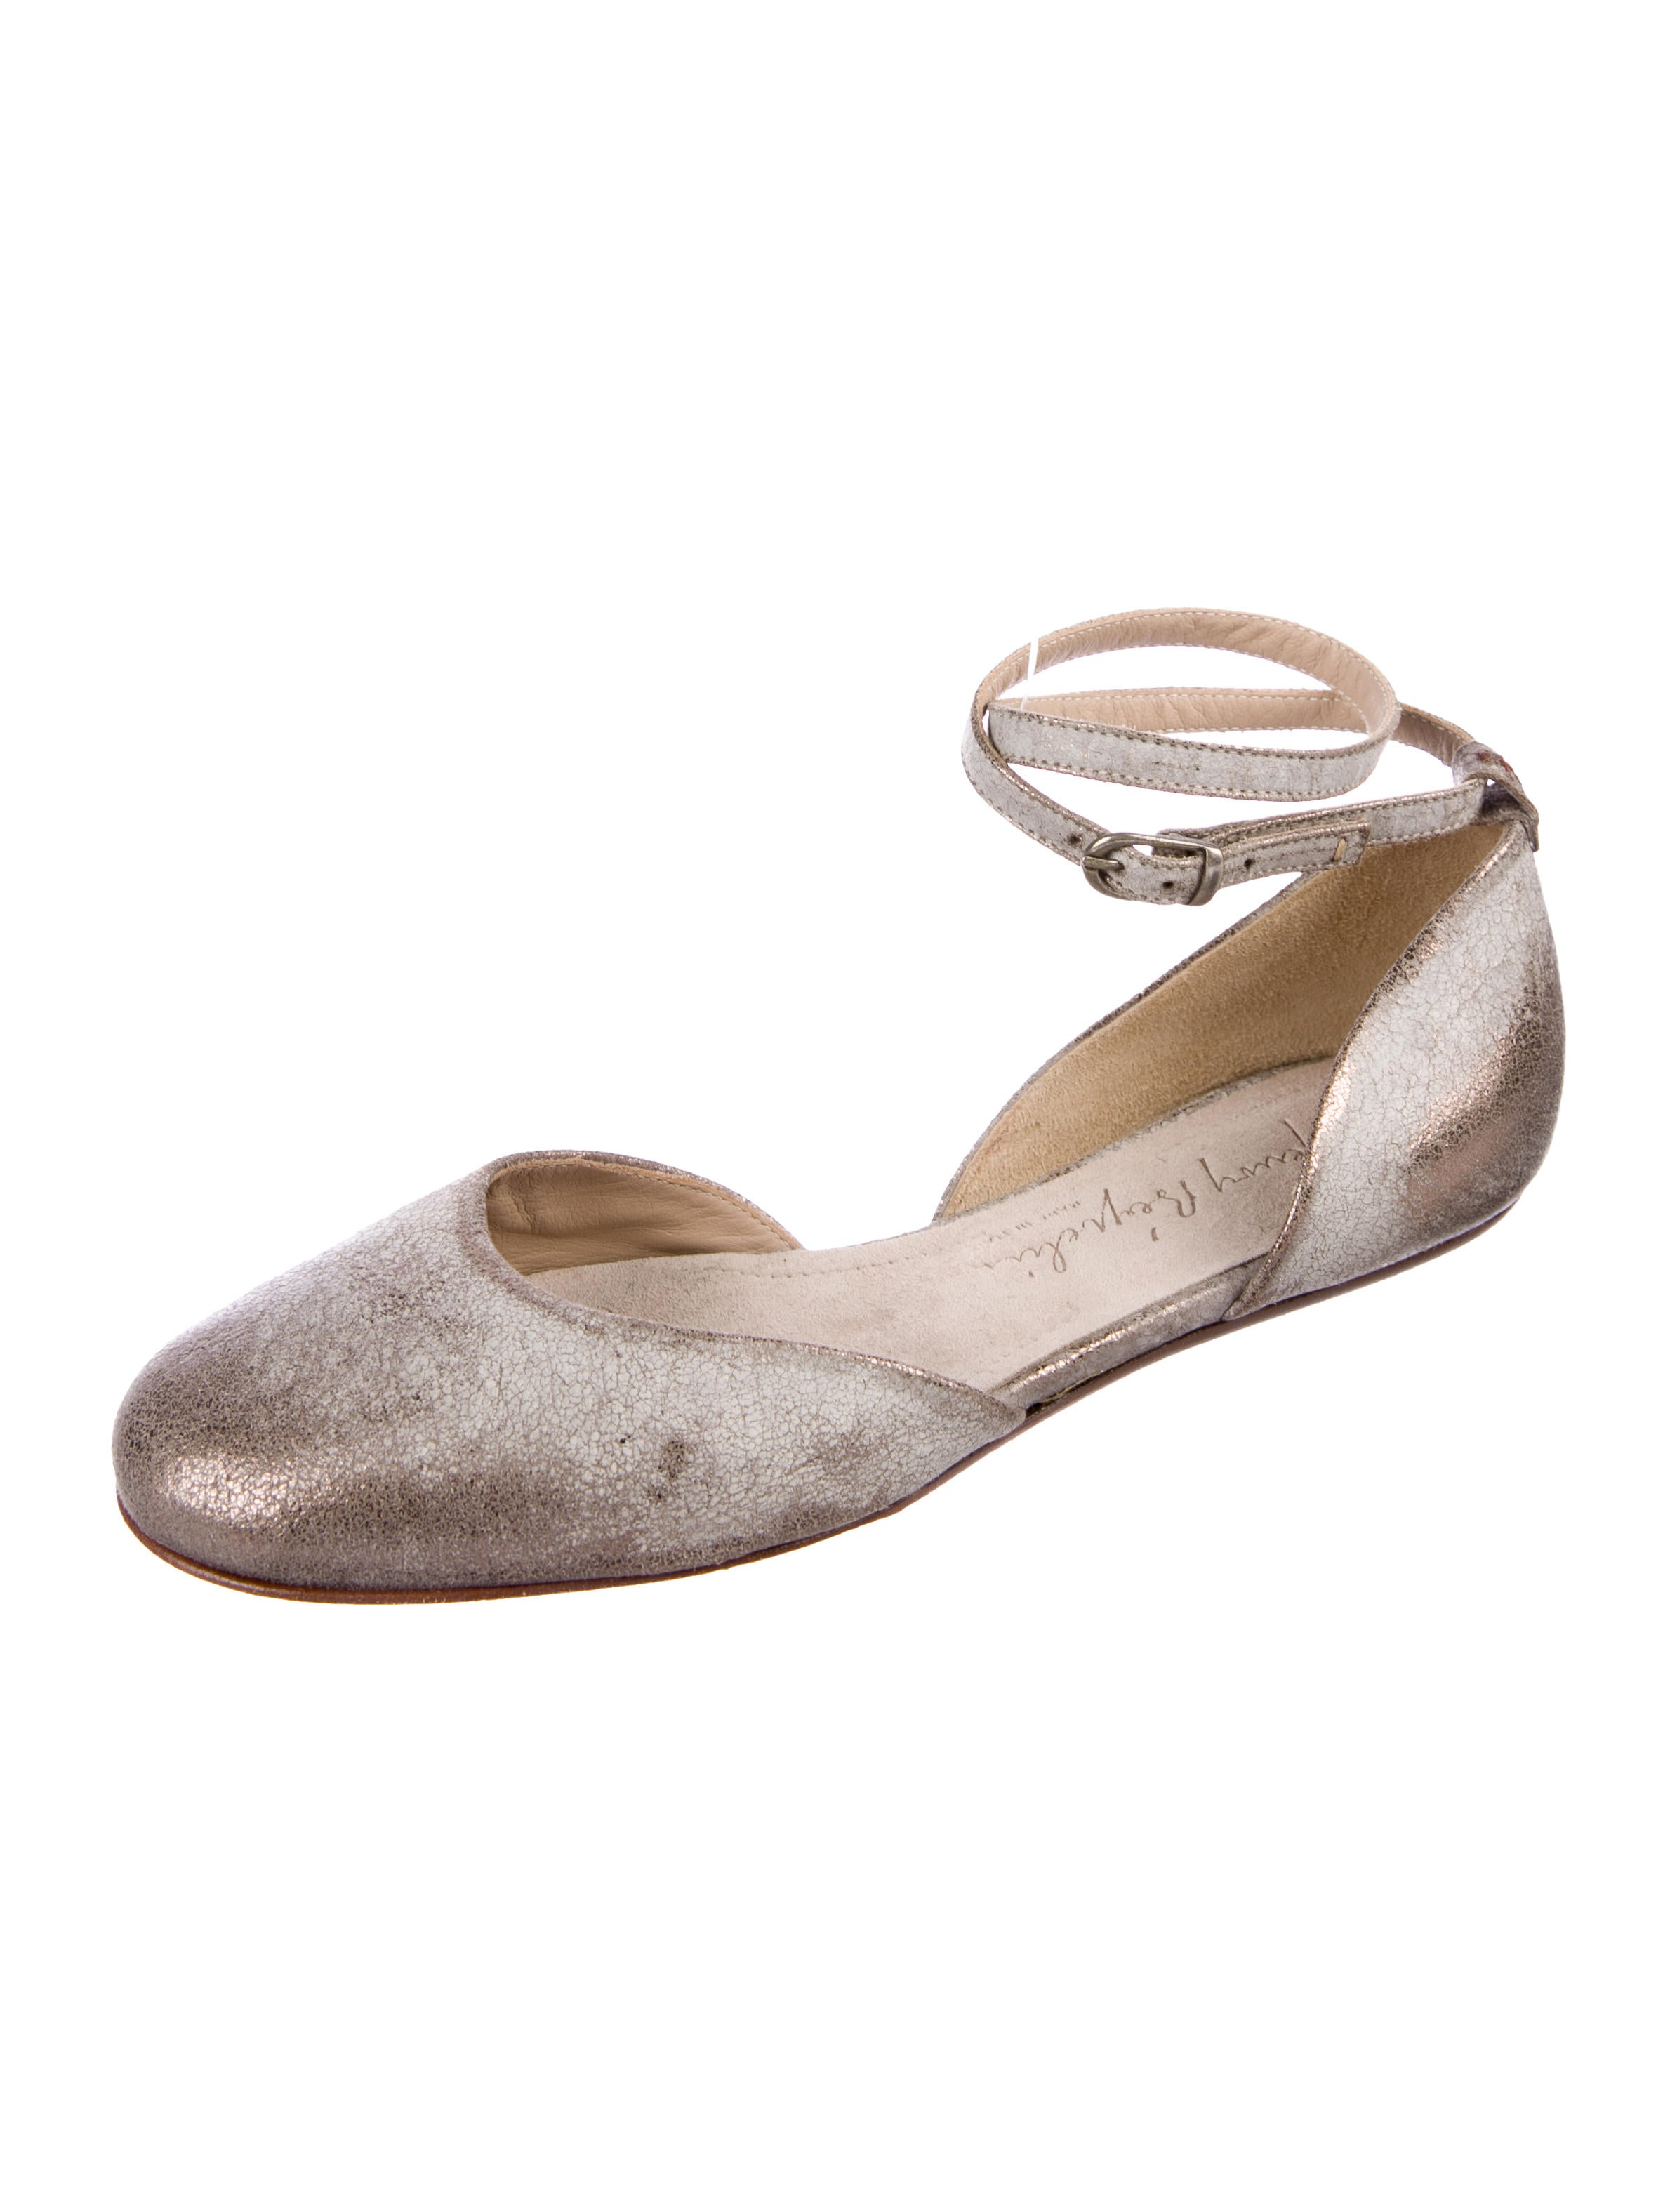 clearance latest Henry Beguelin Leather Round-Toe Flats exclusive online JqPMx